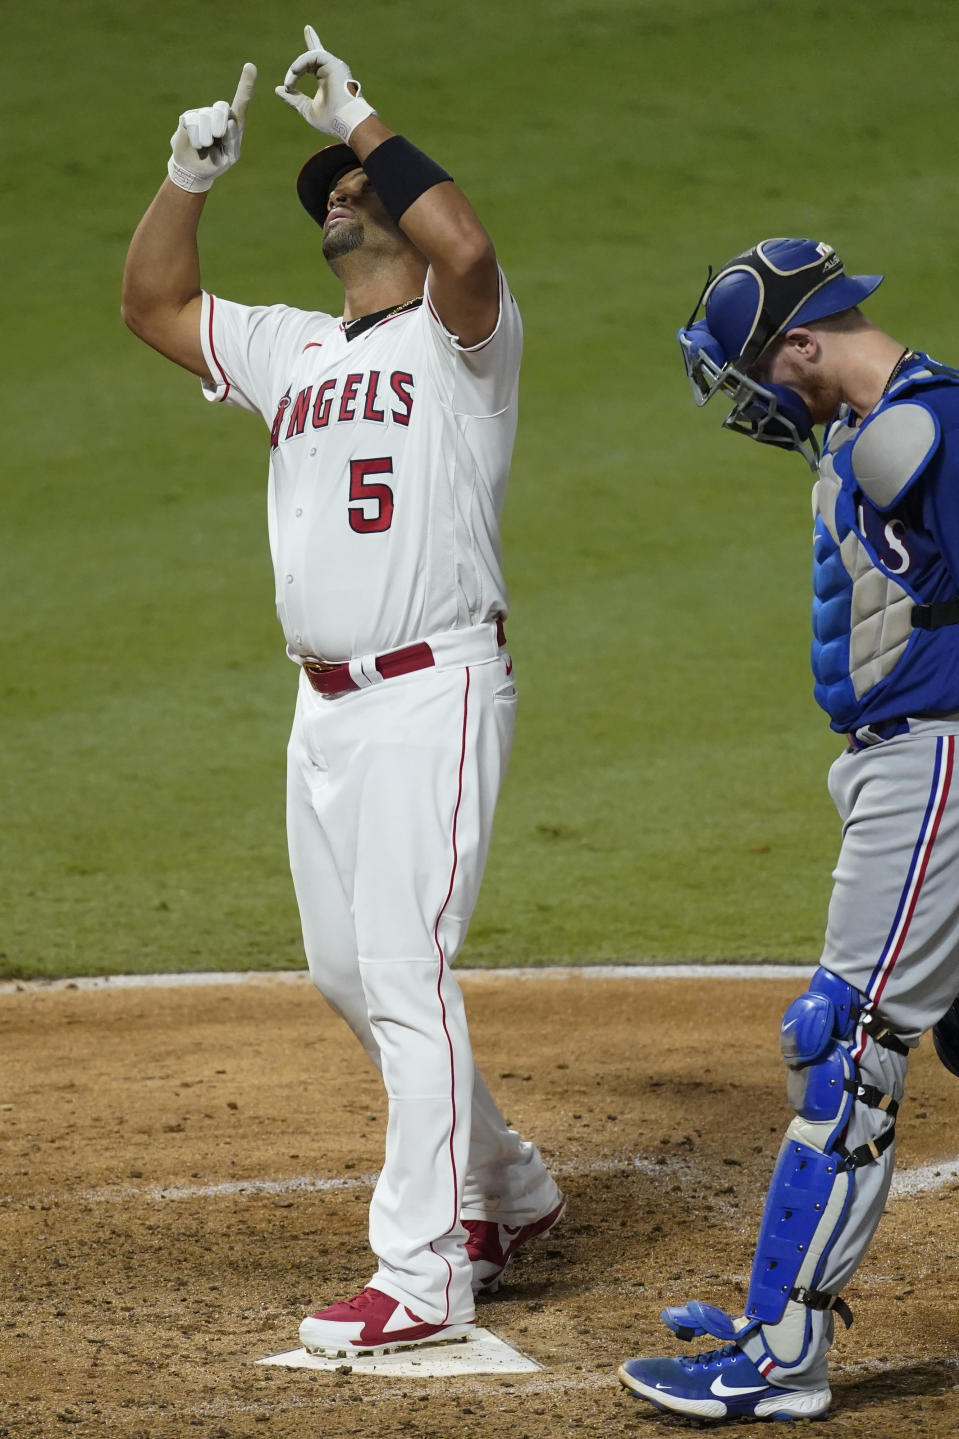 Los Angeles Angels' Albert Pujols points skyward he crosses home plate after a solo home run, next to Texas Rangers Sam Huff during the fifth inning of a baseball game Friday, Sept. 18, 2020, in Anaheim, Calif. (AP Photo/Ashley Landis)